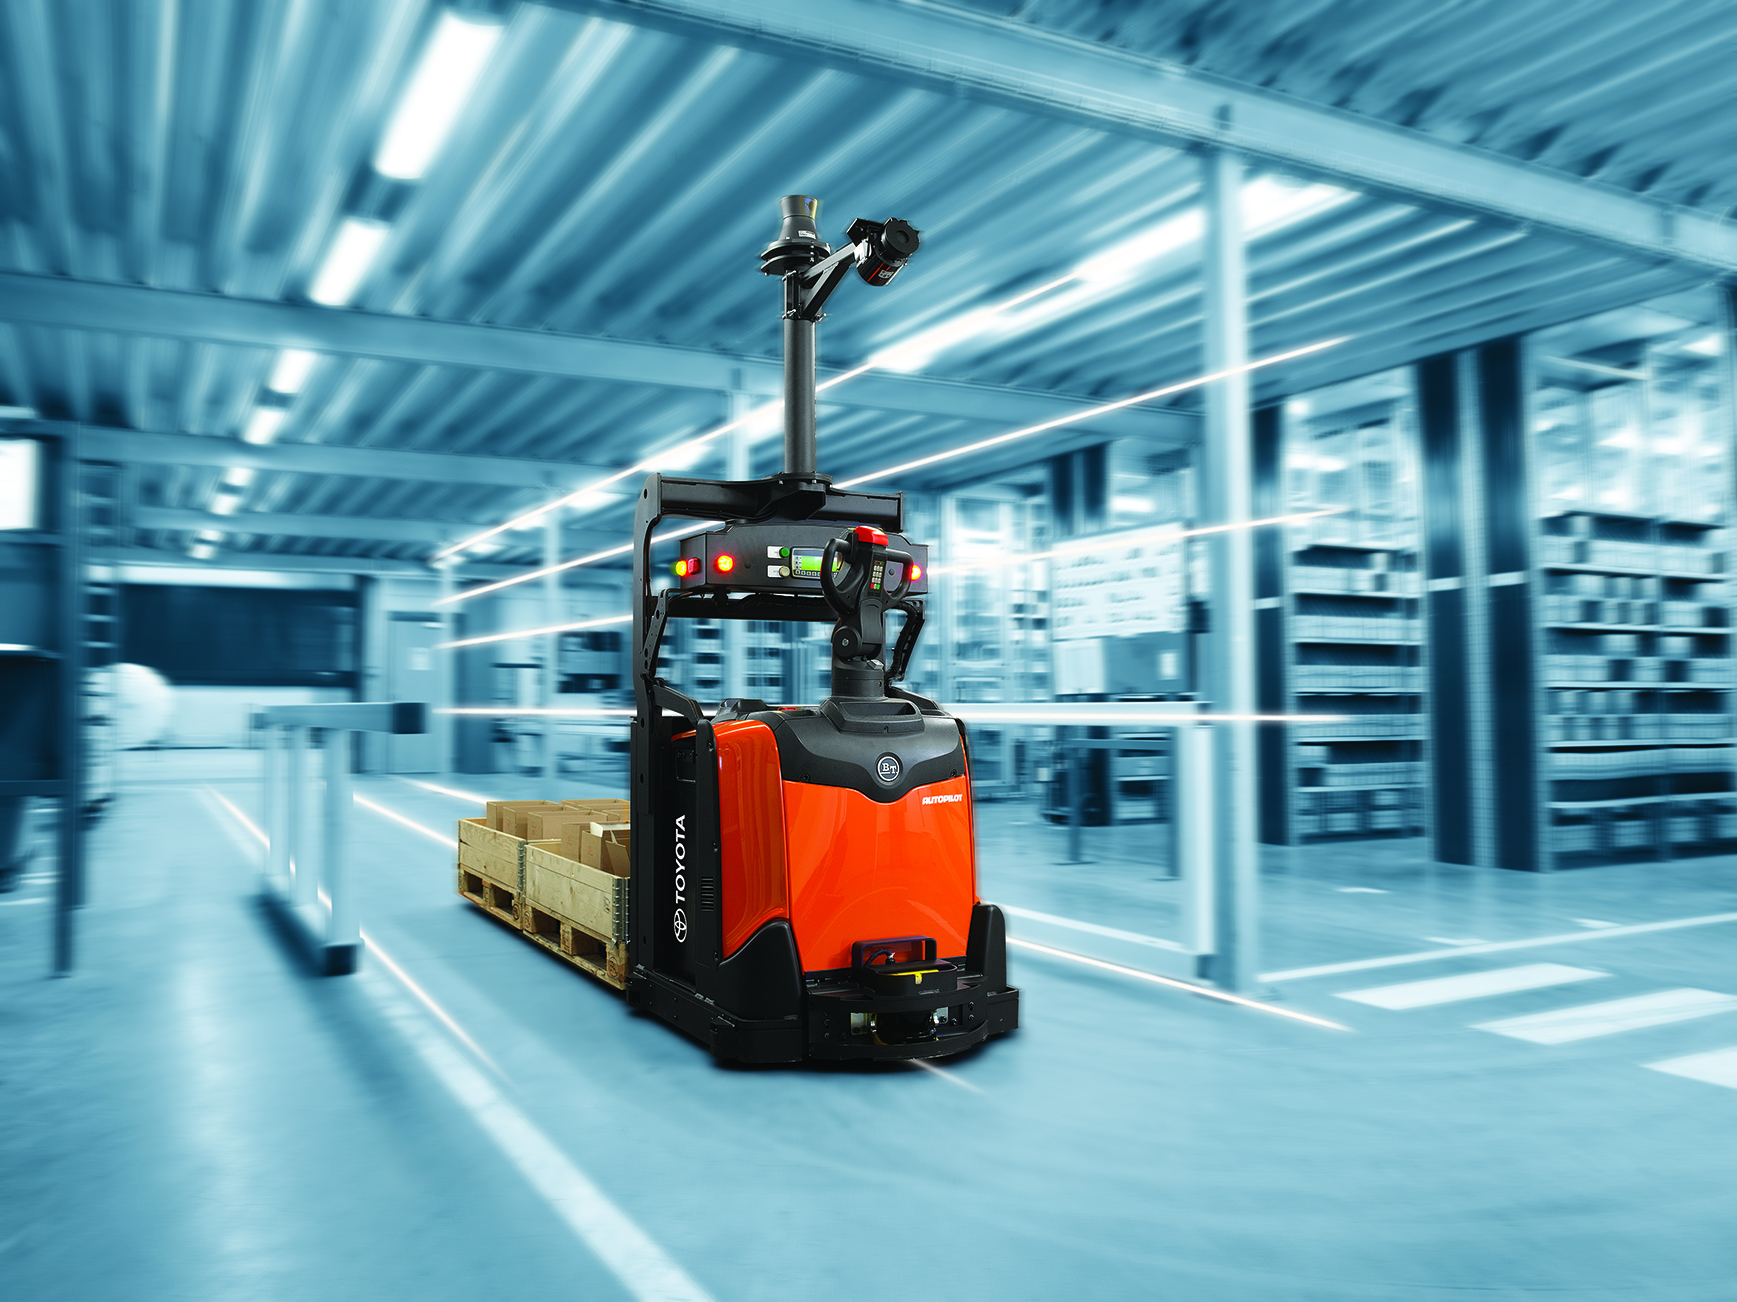 Chinese ecommerce giant shows off its first ever 'robot warehouse'